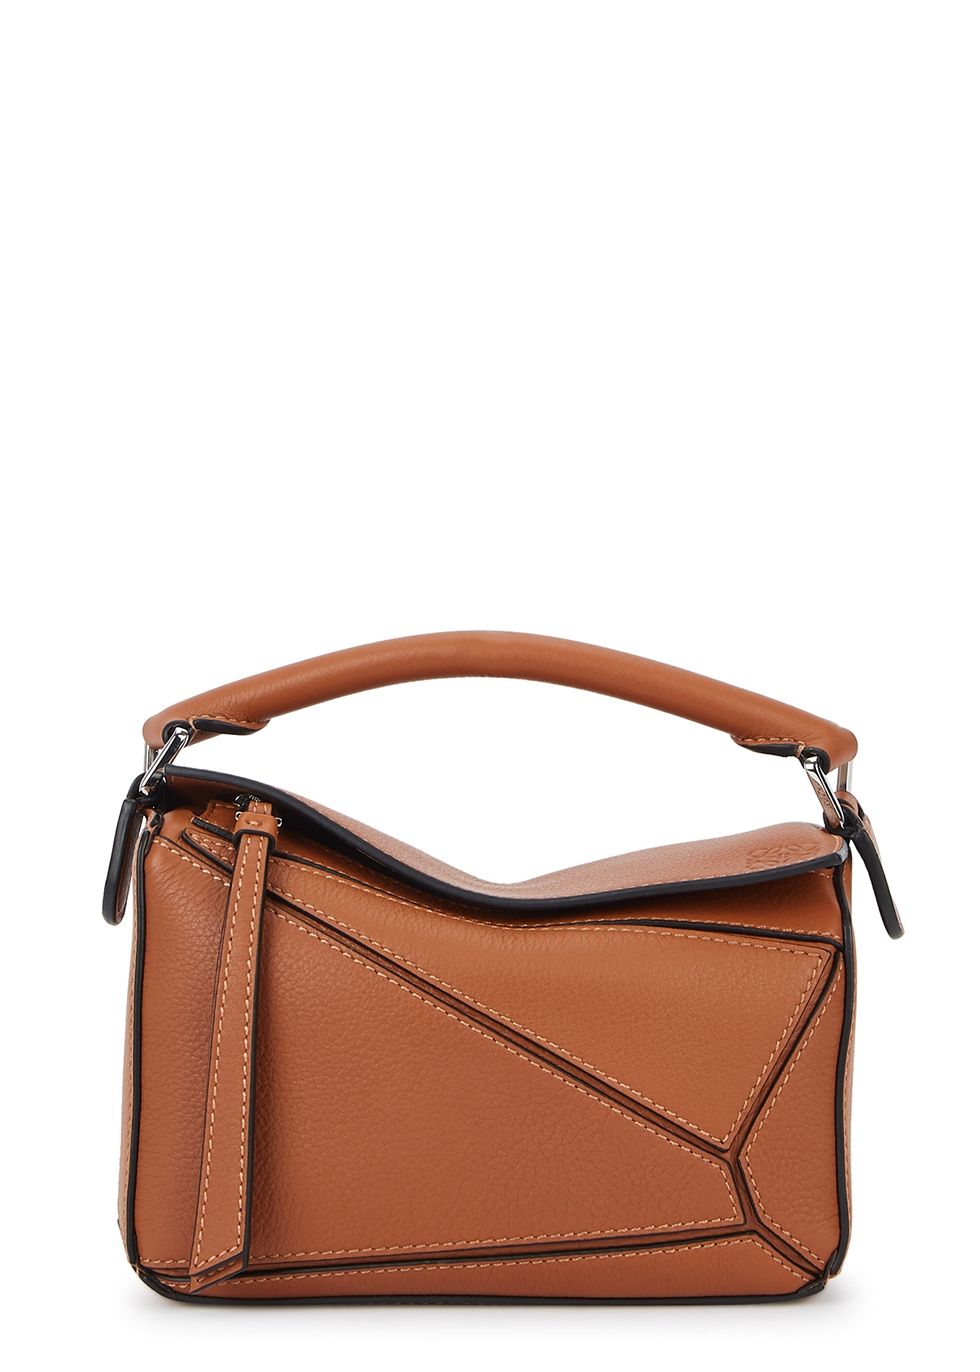 Puzzle mini brown leather cross-body bag